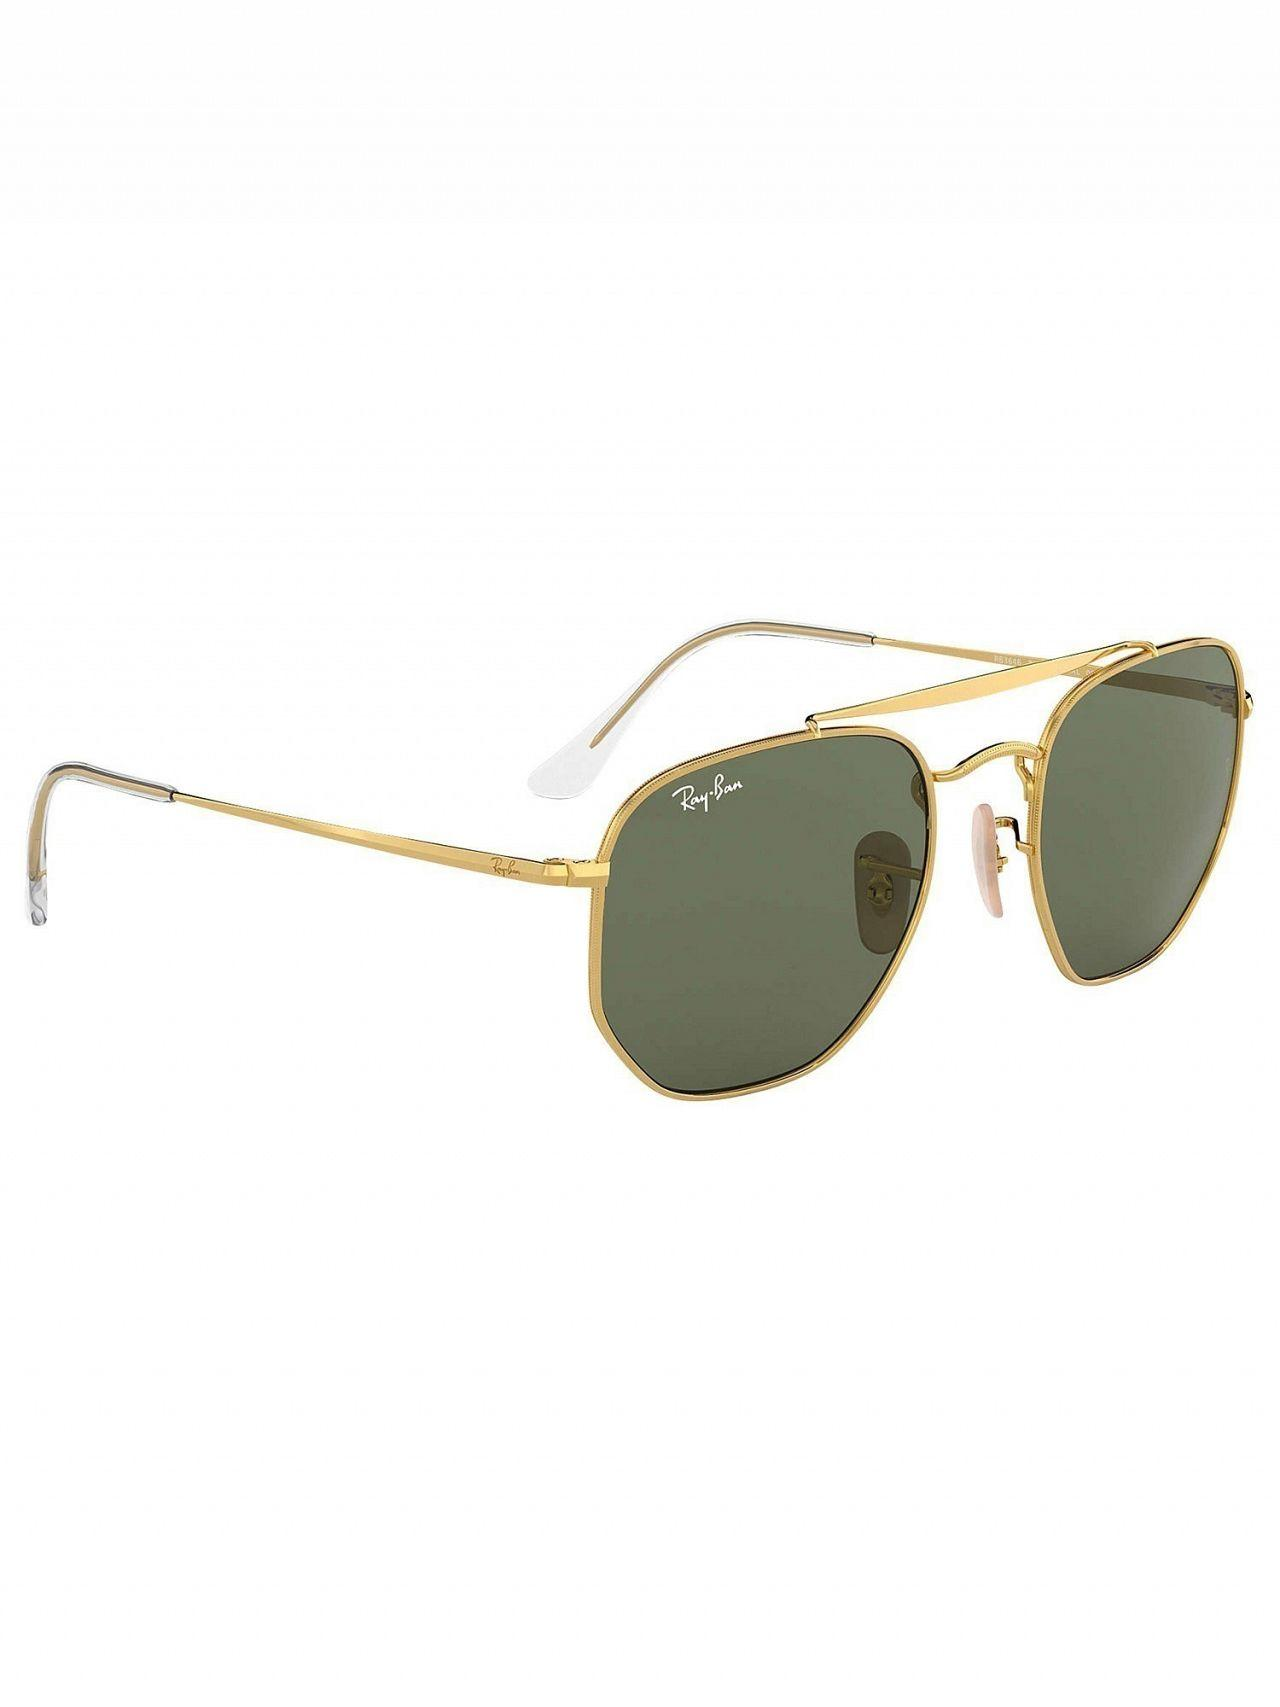 061cda1defe29 Lyst - Ray-Ban Gold Rb3648 Marshal Sunglasses in Metallic for Men